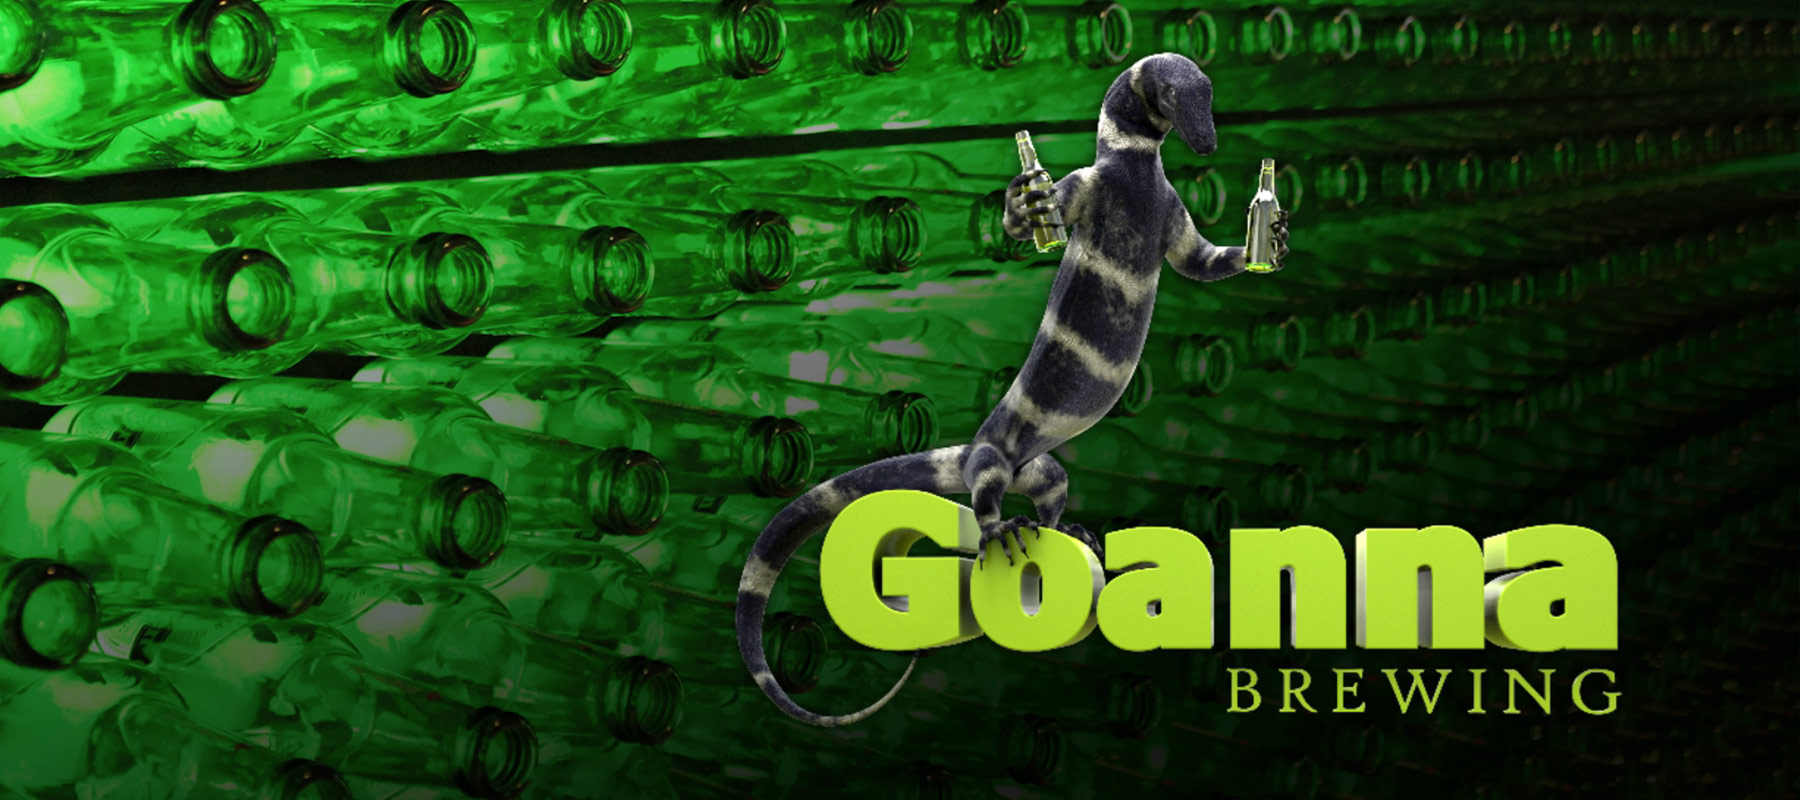 Goanna Brewing logo